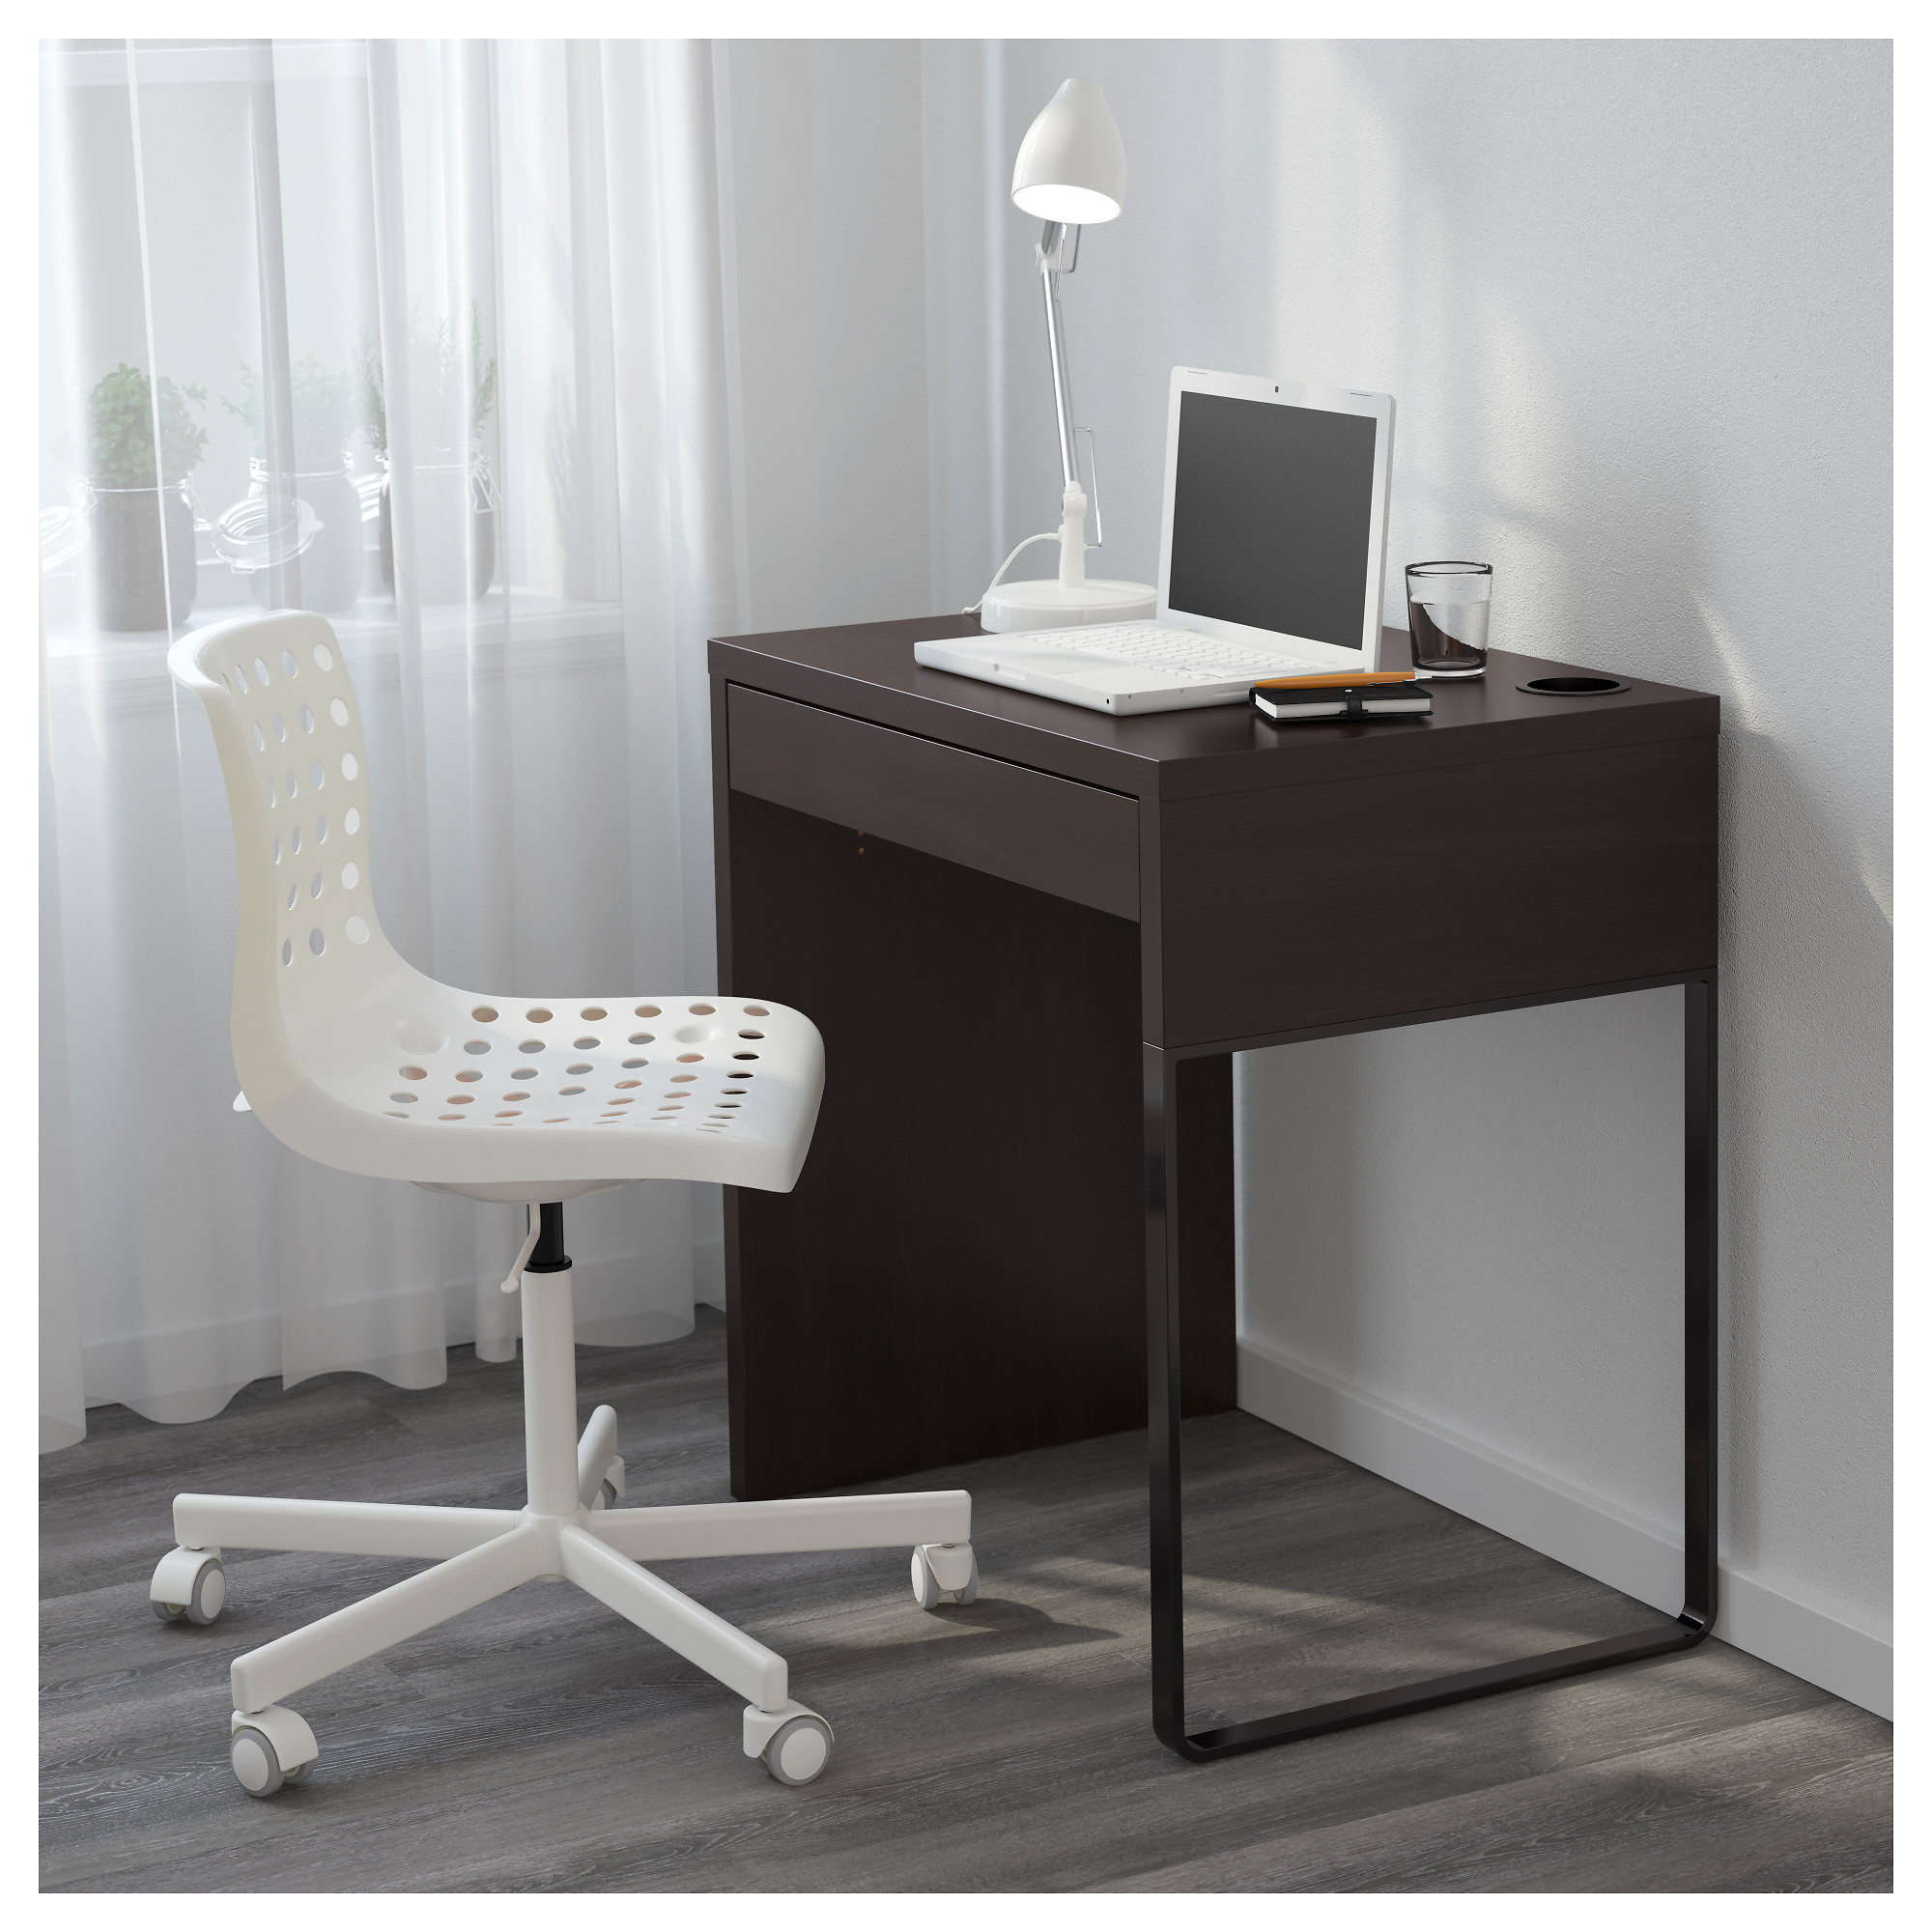 Ikea study table black - Ikea Study Table Black 34